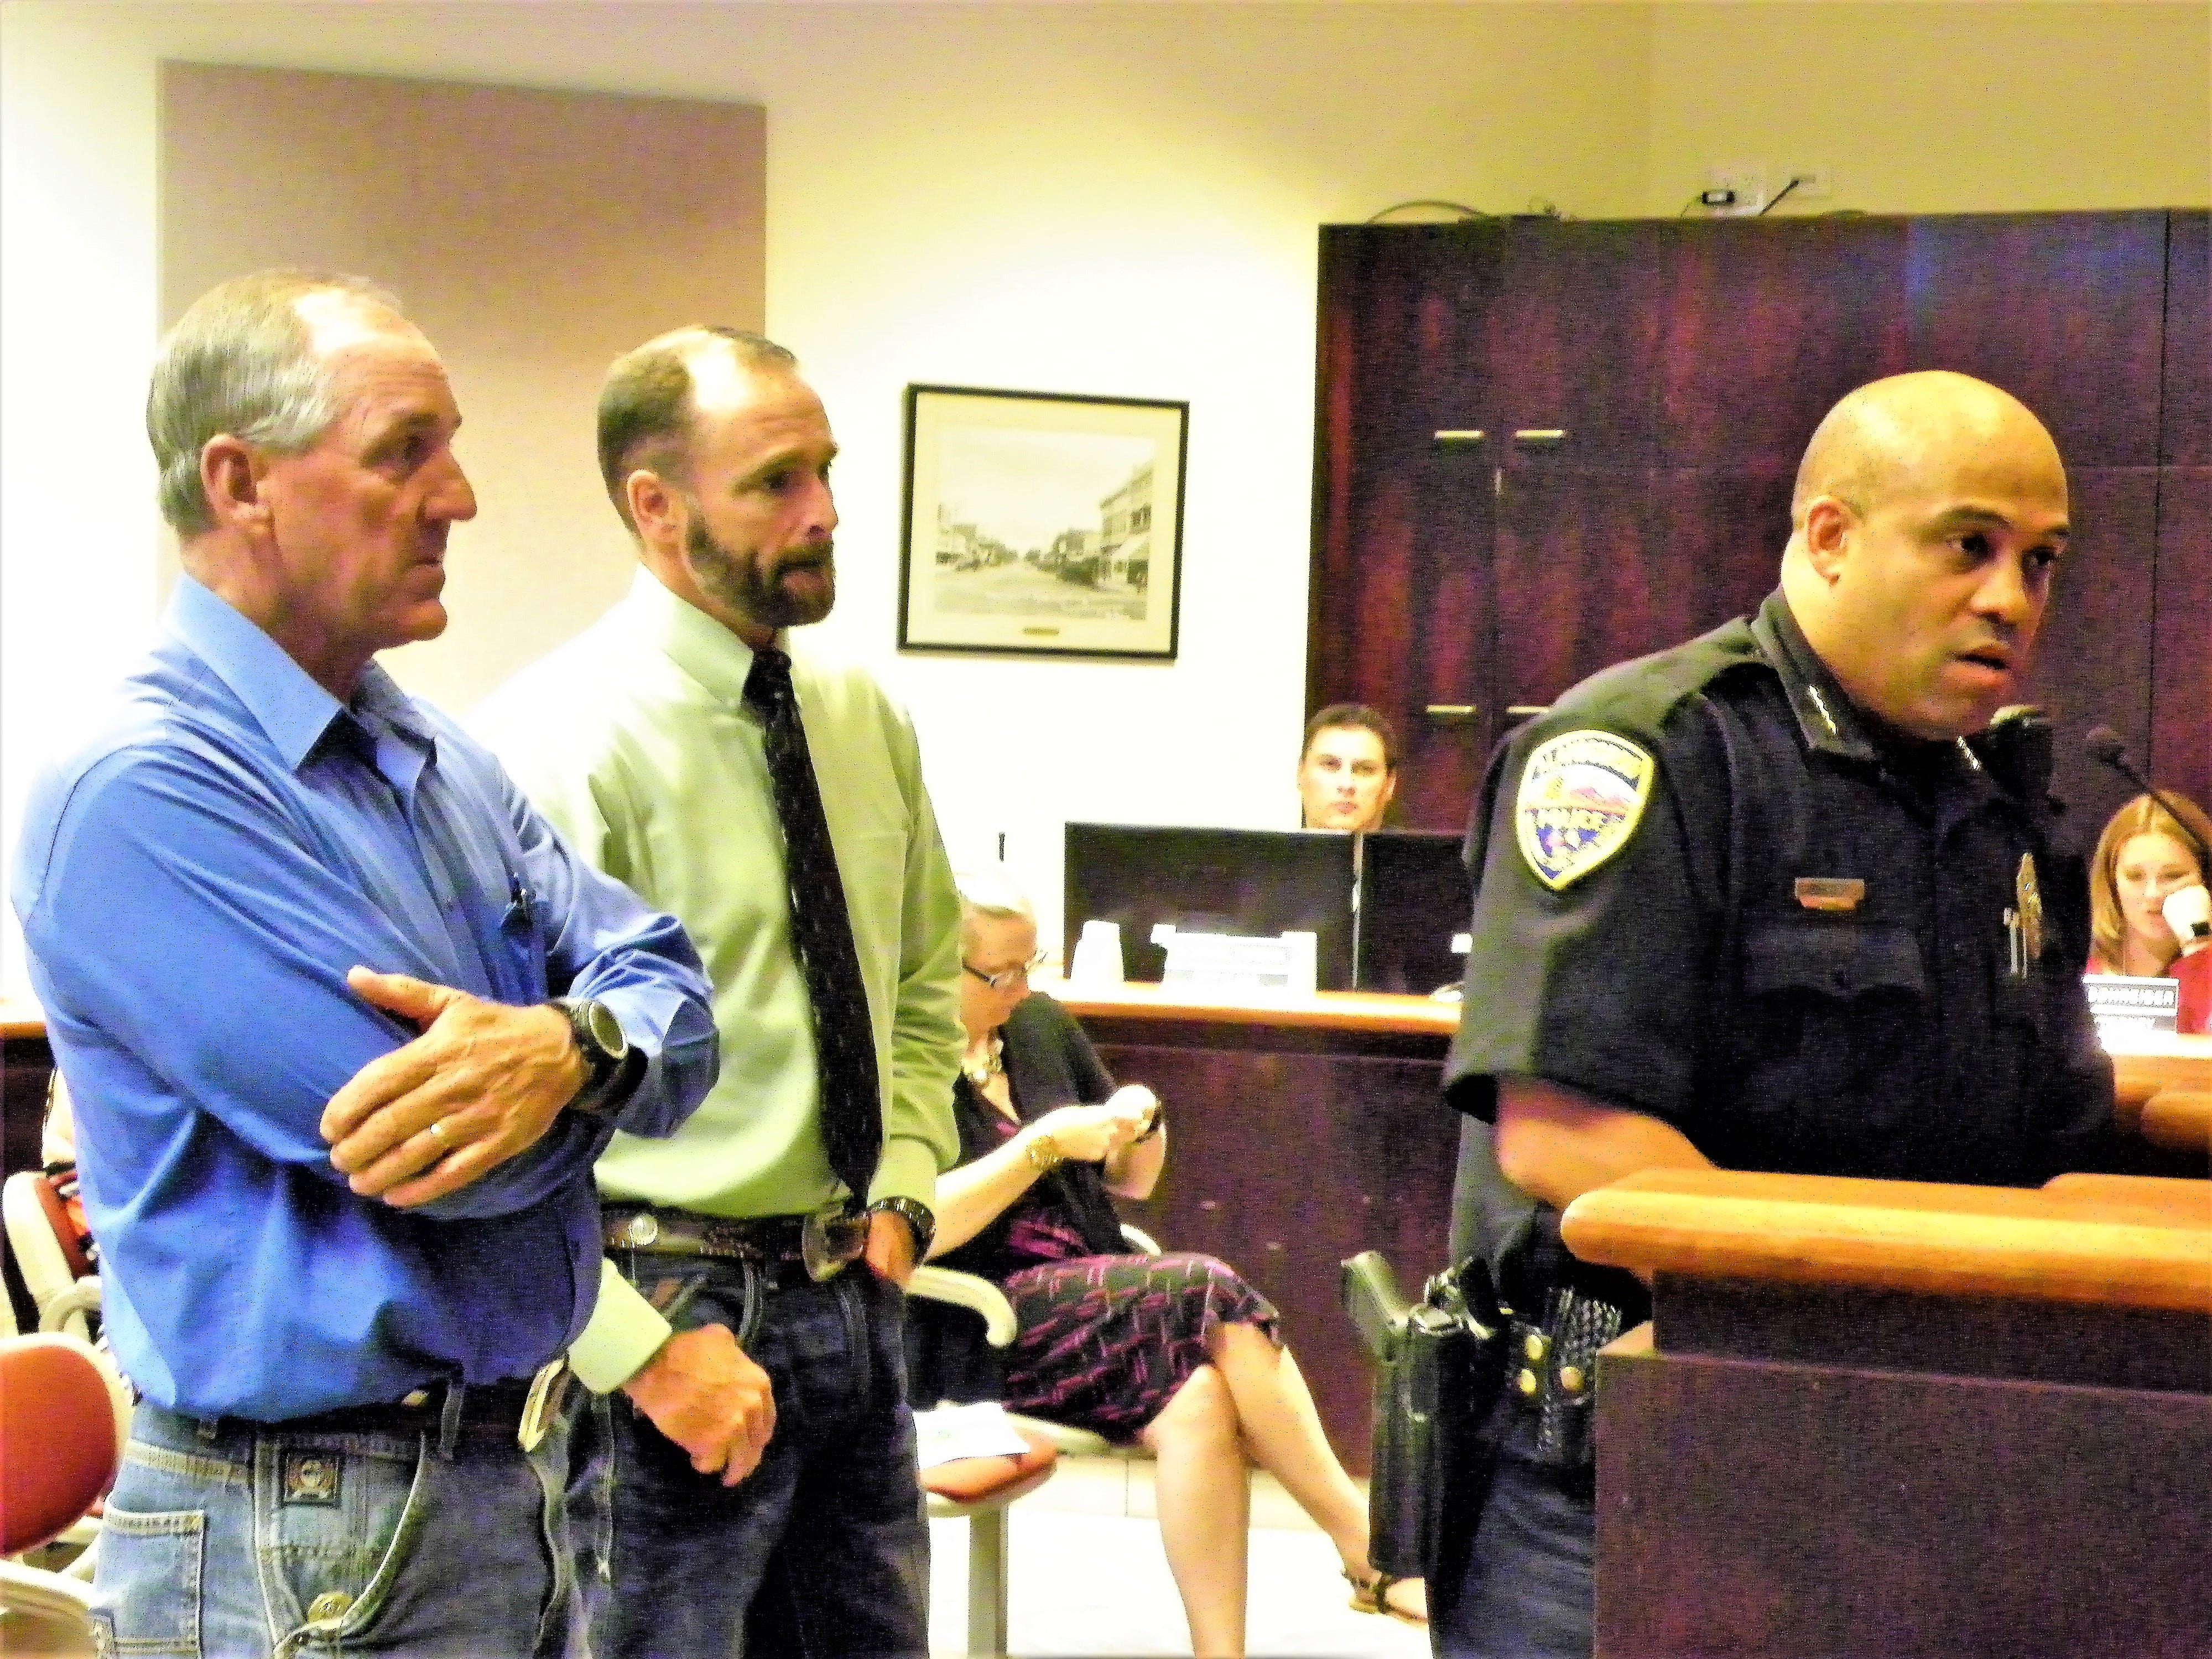 Alamogordo Police Chief Brian Peete, right, speaks about the White Mountain Task Force and High Intensity Drug Trafficking Area program at the Aug. 28 regular Alamogordo City Commission meeting. Behind Peete are Otero County Magistrate Judge Michael Ryan Suggs and Otero County Sheriff-Elect David Black.